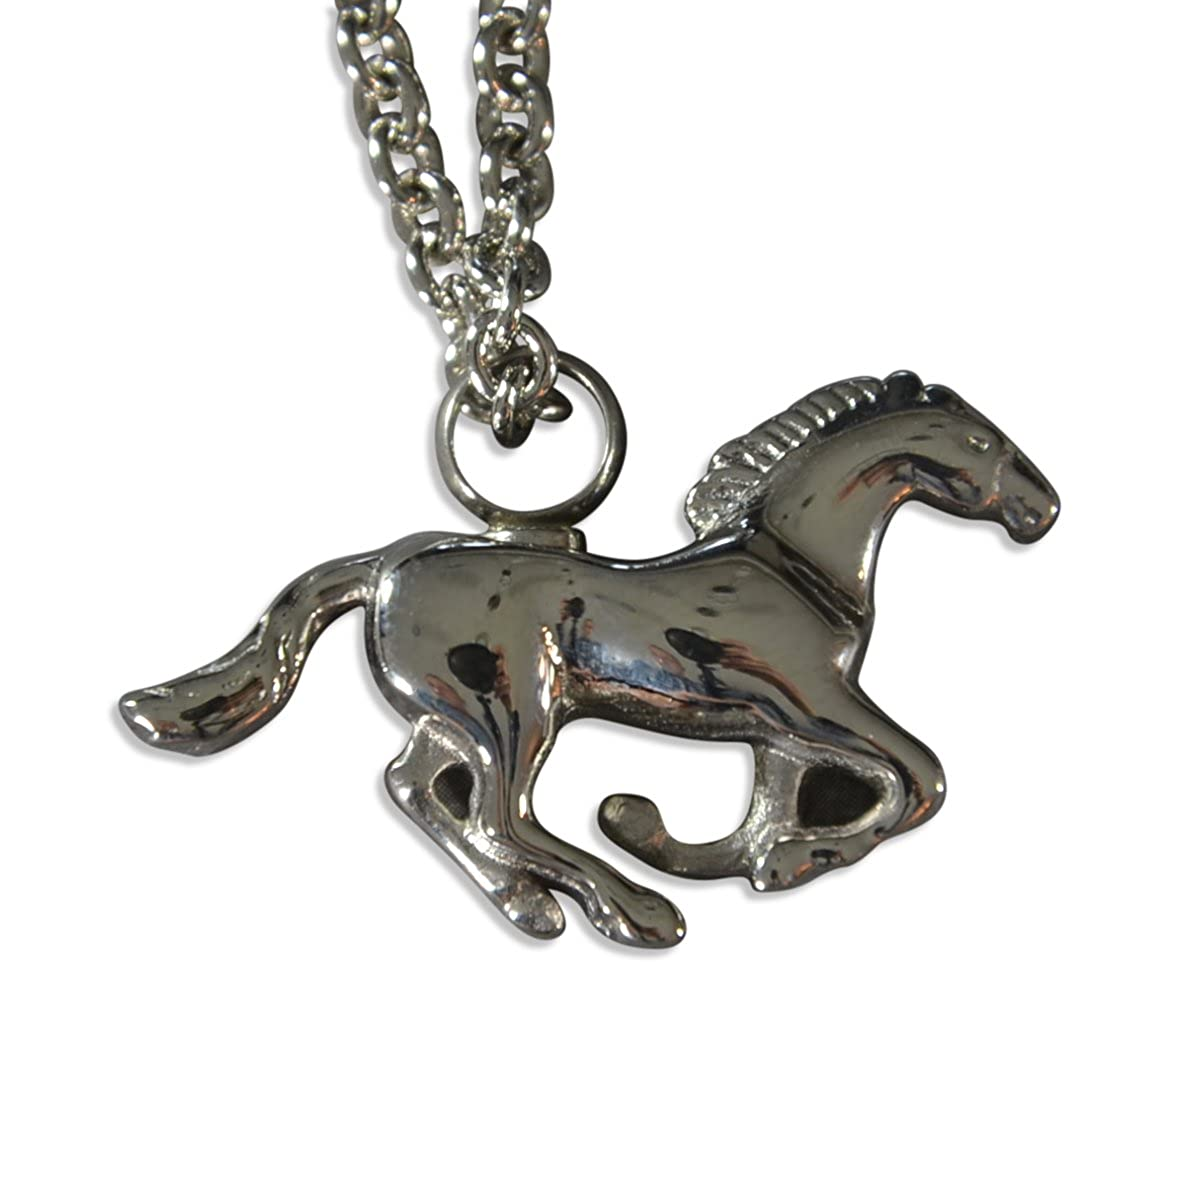 Silver Galloping Mustang Horse Urn Secret Stash Cremation Necklace Urn Stallion Keepsake Memorial Capsule Vial Gwen Delicious